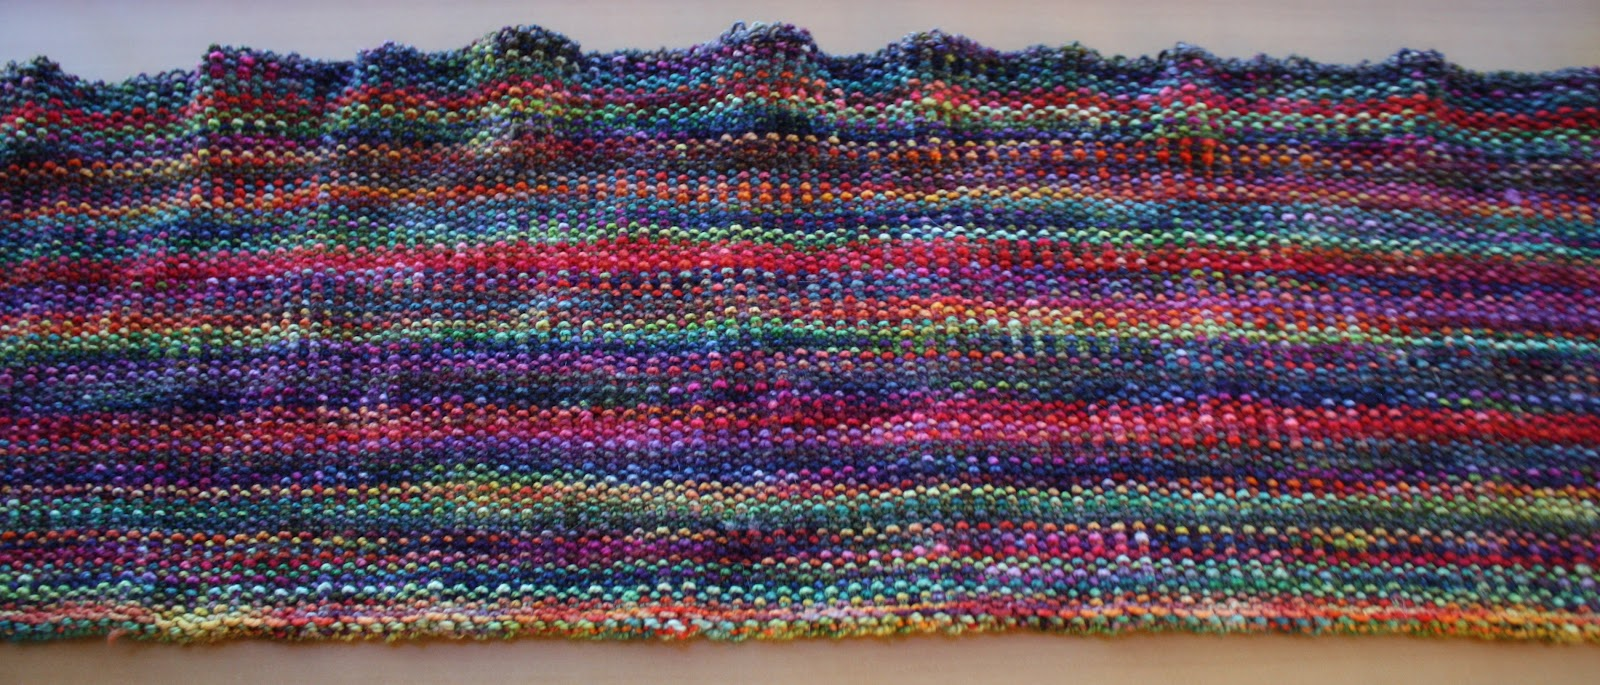 QueerJoes Knitting Blog